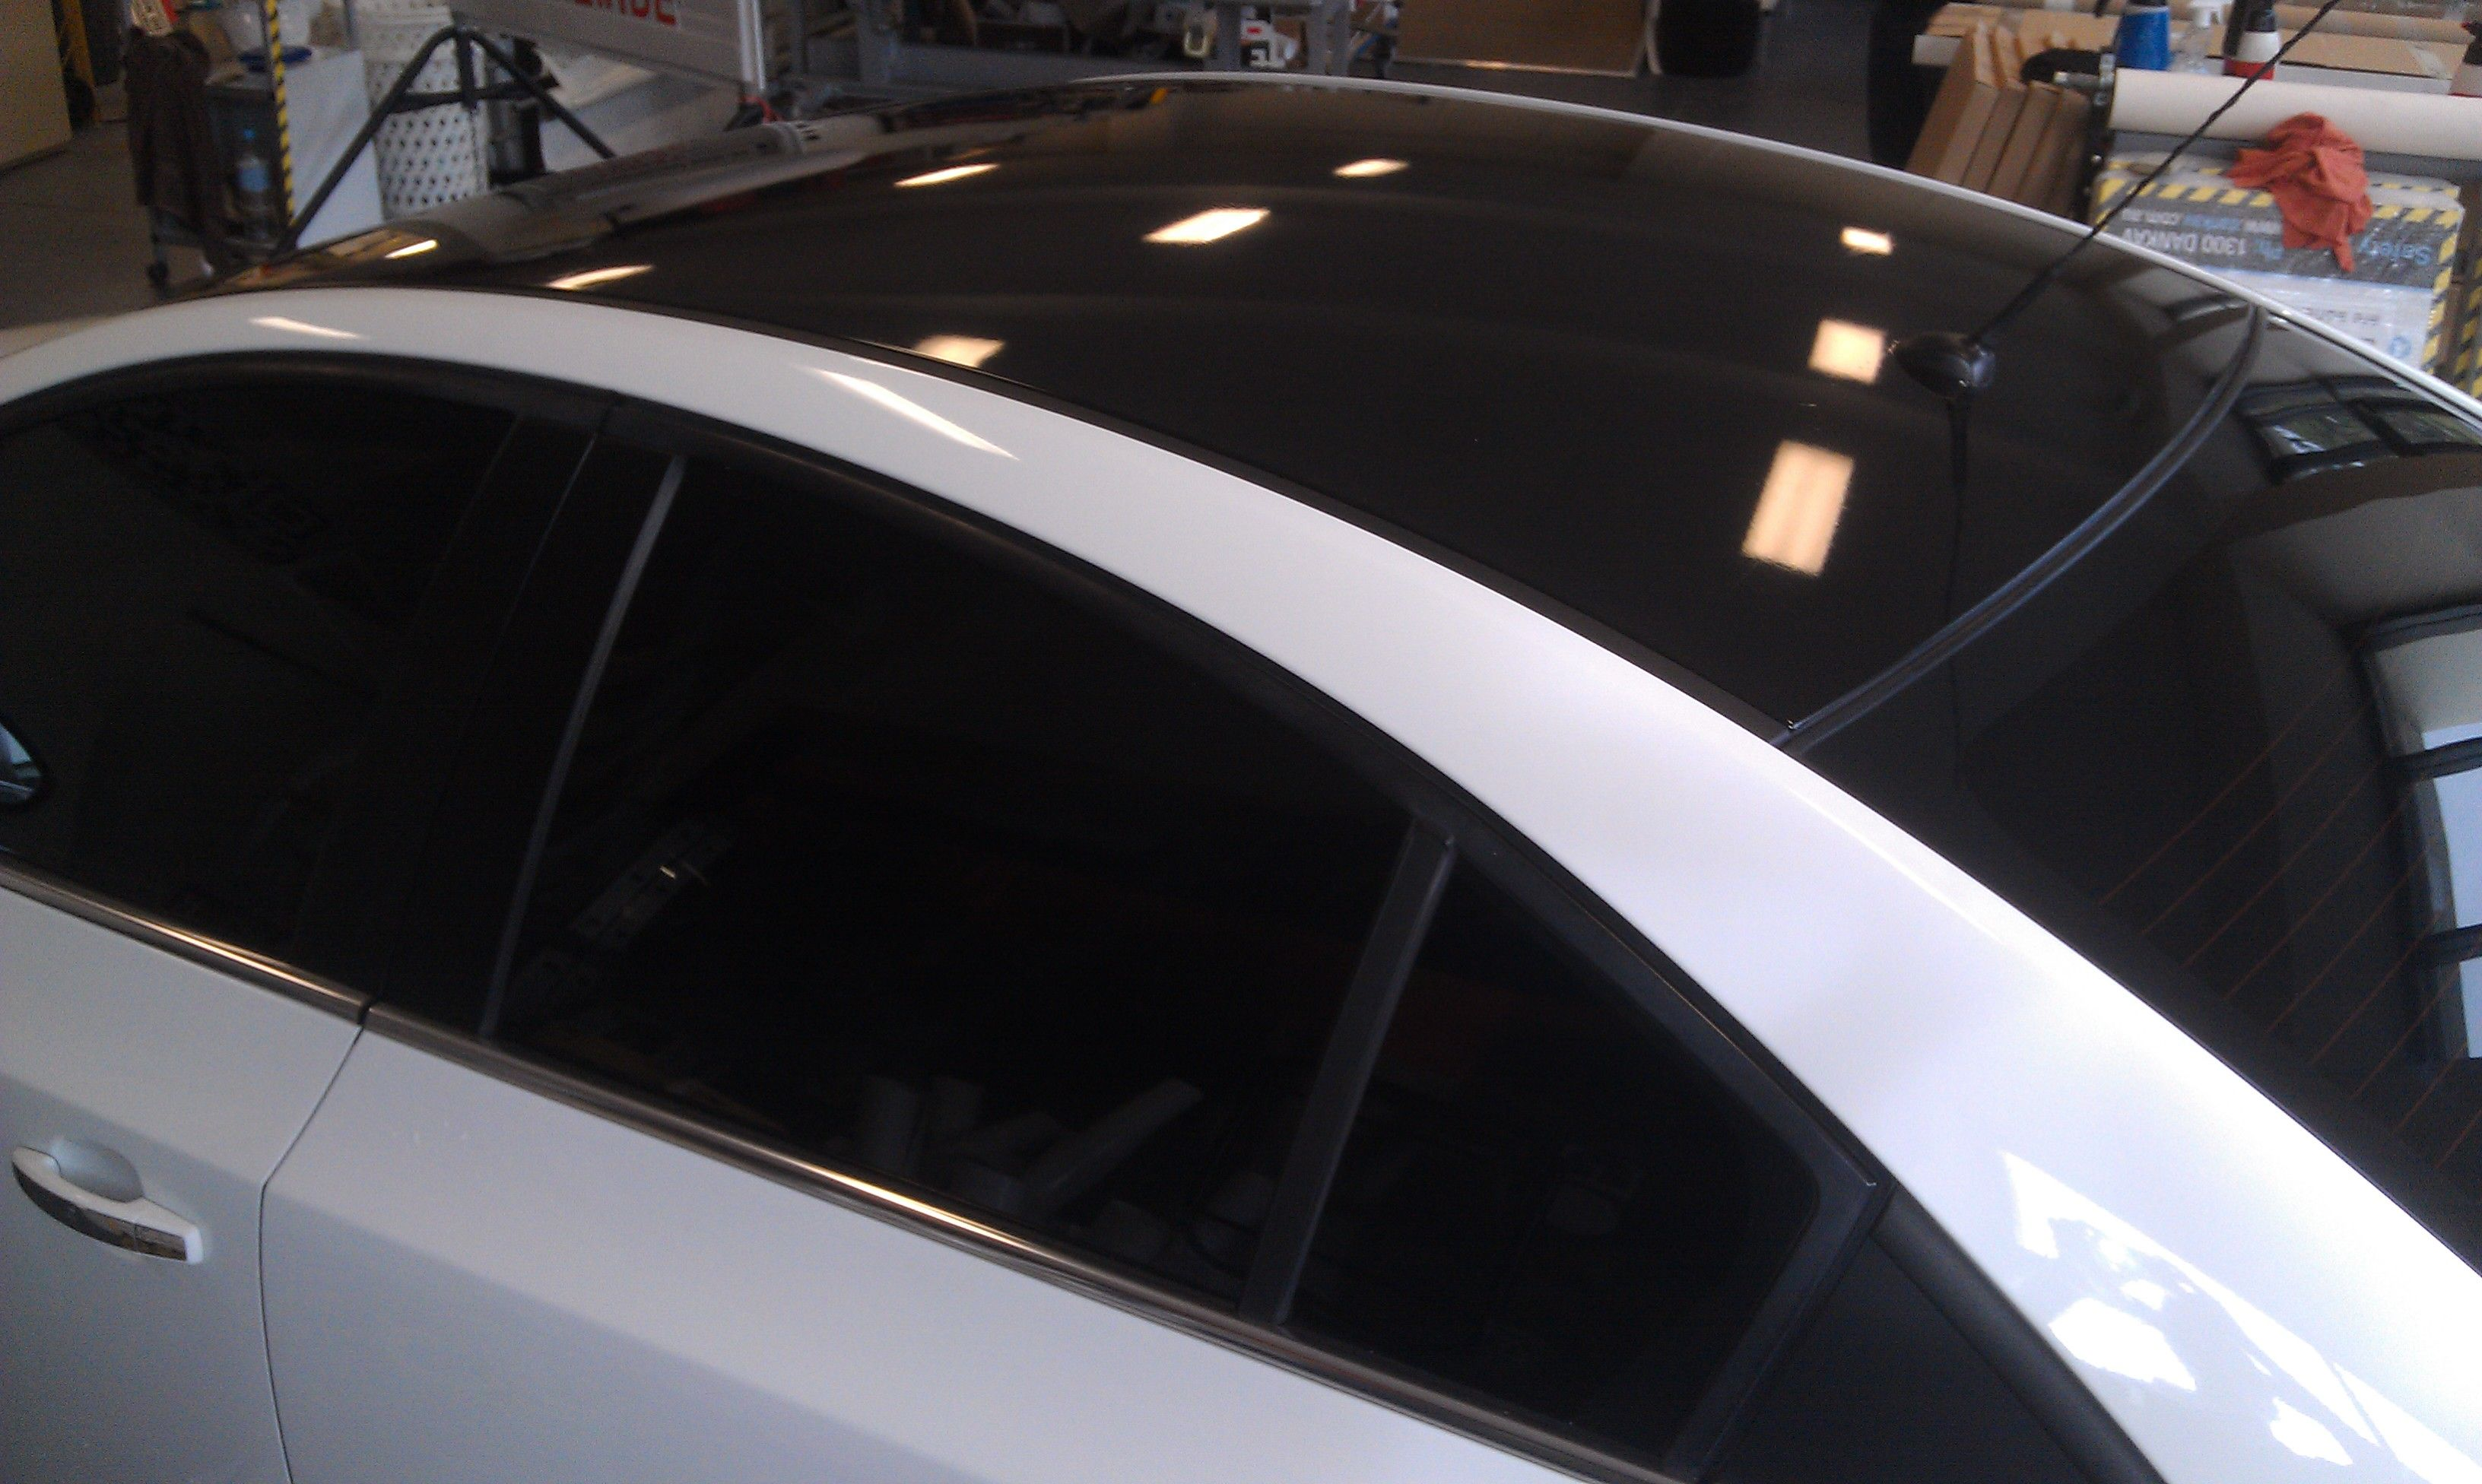 Wrapping The Roof Of Your Car To Make It Look Super Slick Black Gloss Vinyl Works A Treat Car Wrap Car Gold Coast